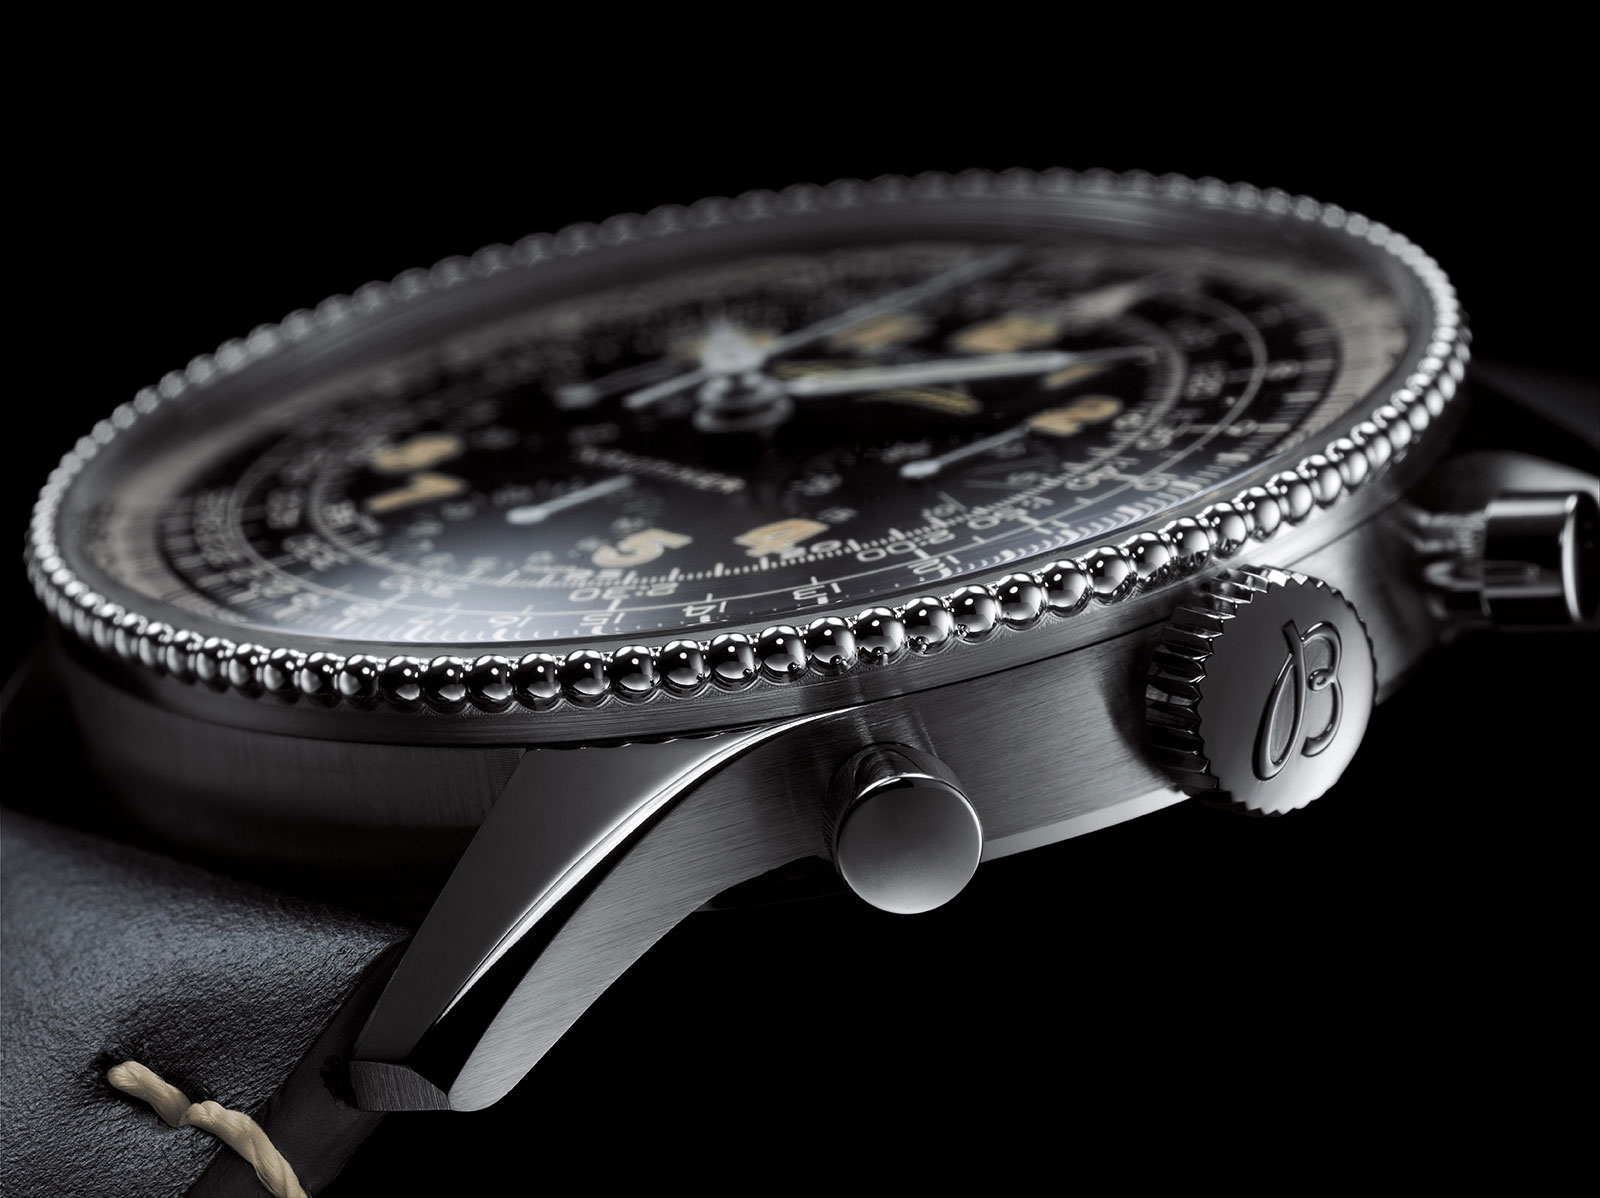 Breitling Navitimer Ref. 806 1959 Re-Edition 4